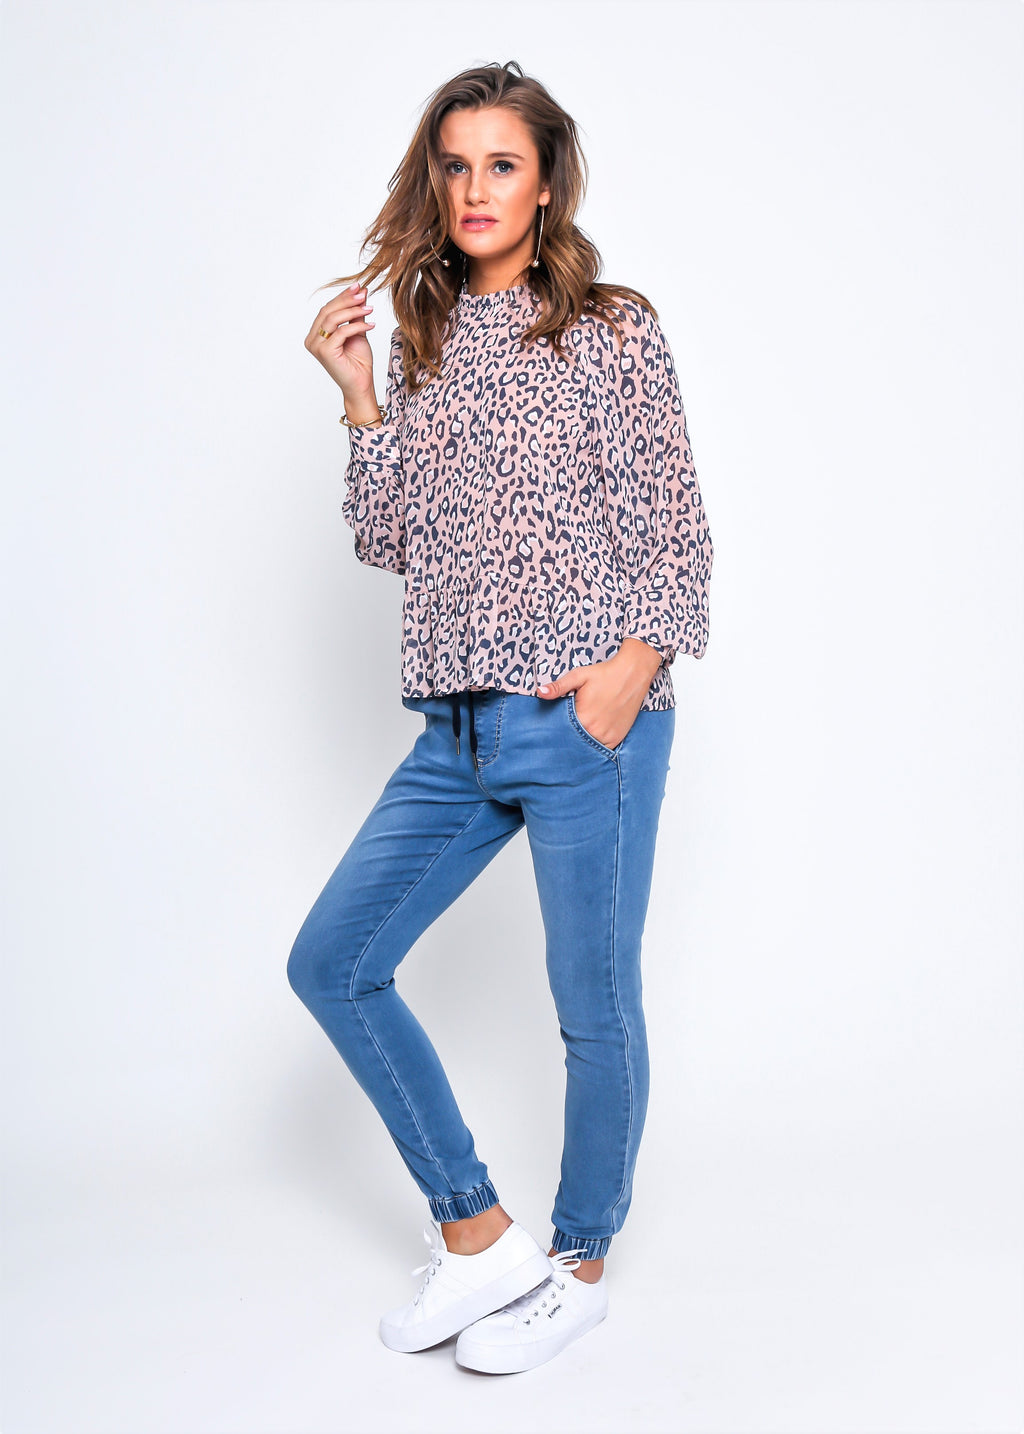 FAITH TOP - BLUSH LEOPARD